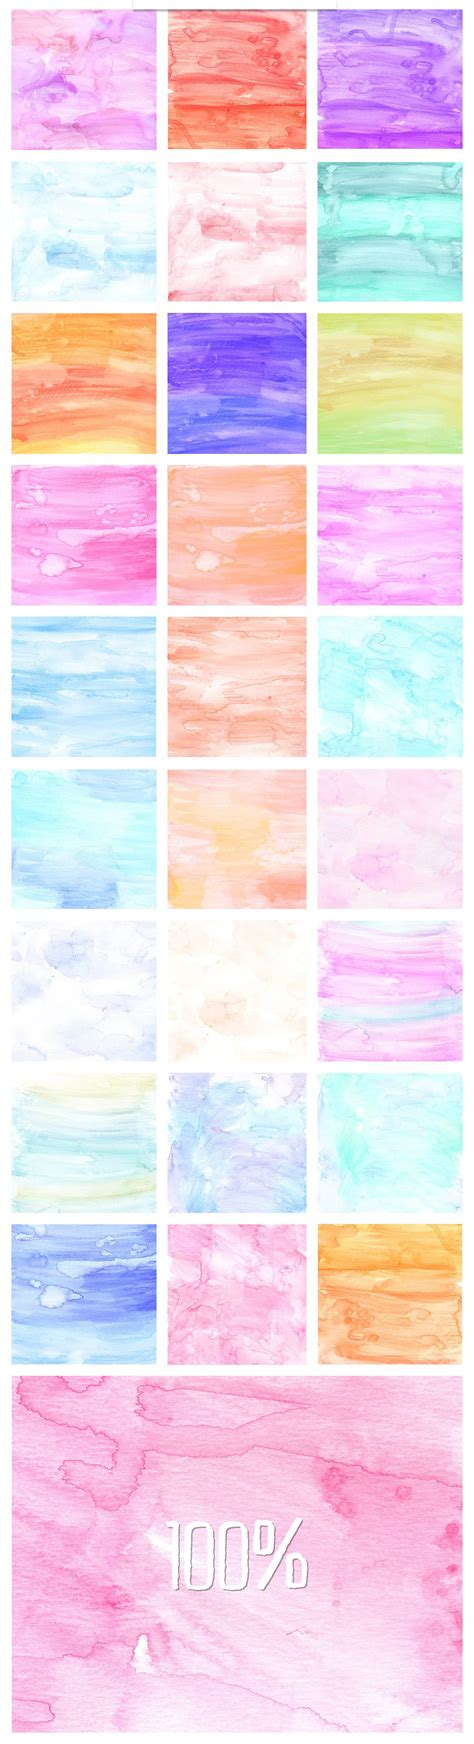 Watercolor On Handmade Paper - a versatile collection of 33 free handmade digital